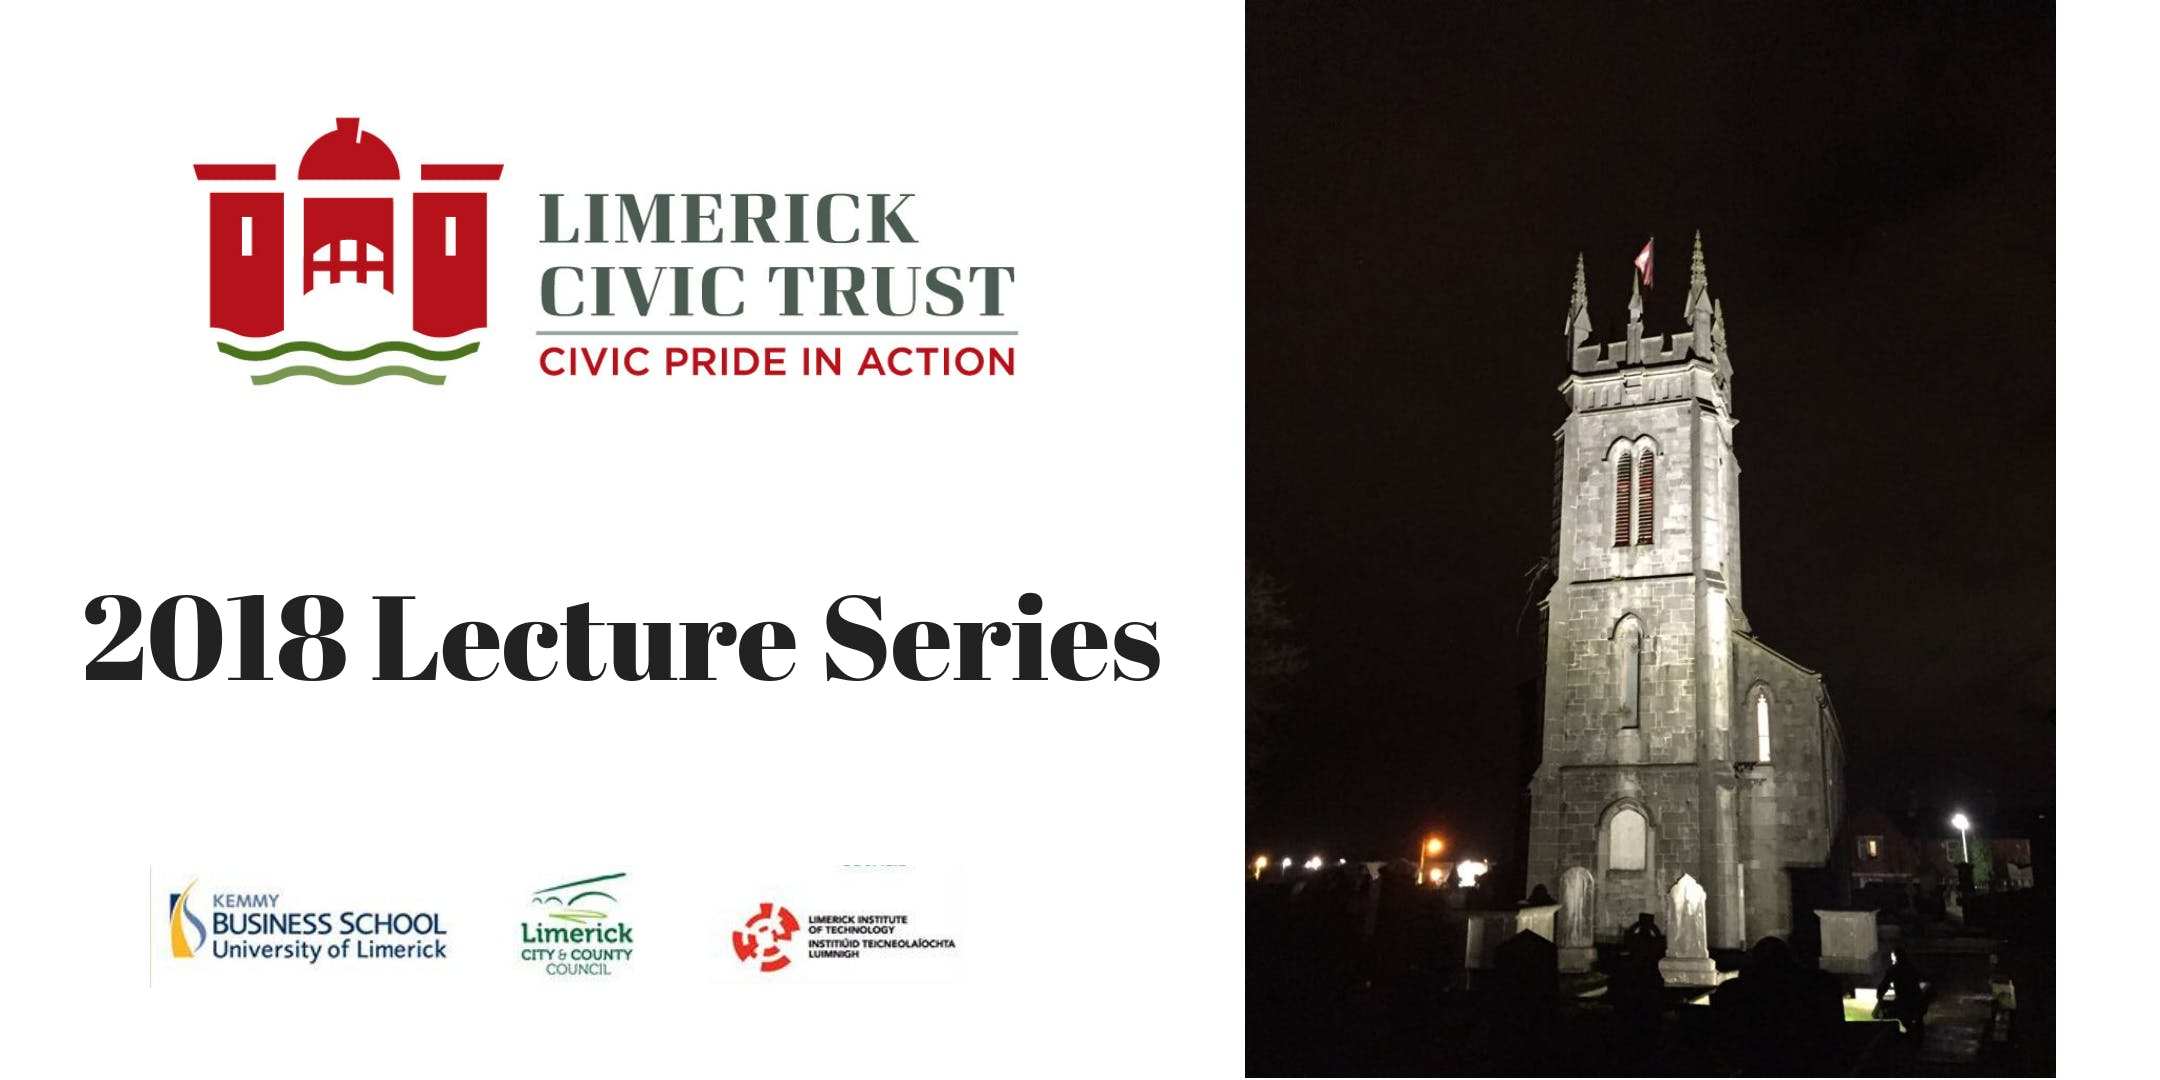 Limerick Civic Trust Lecture Series - Emma Kennedy